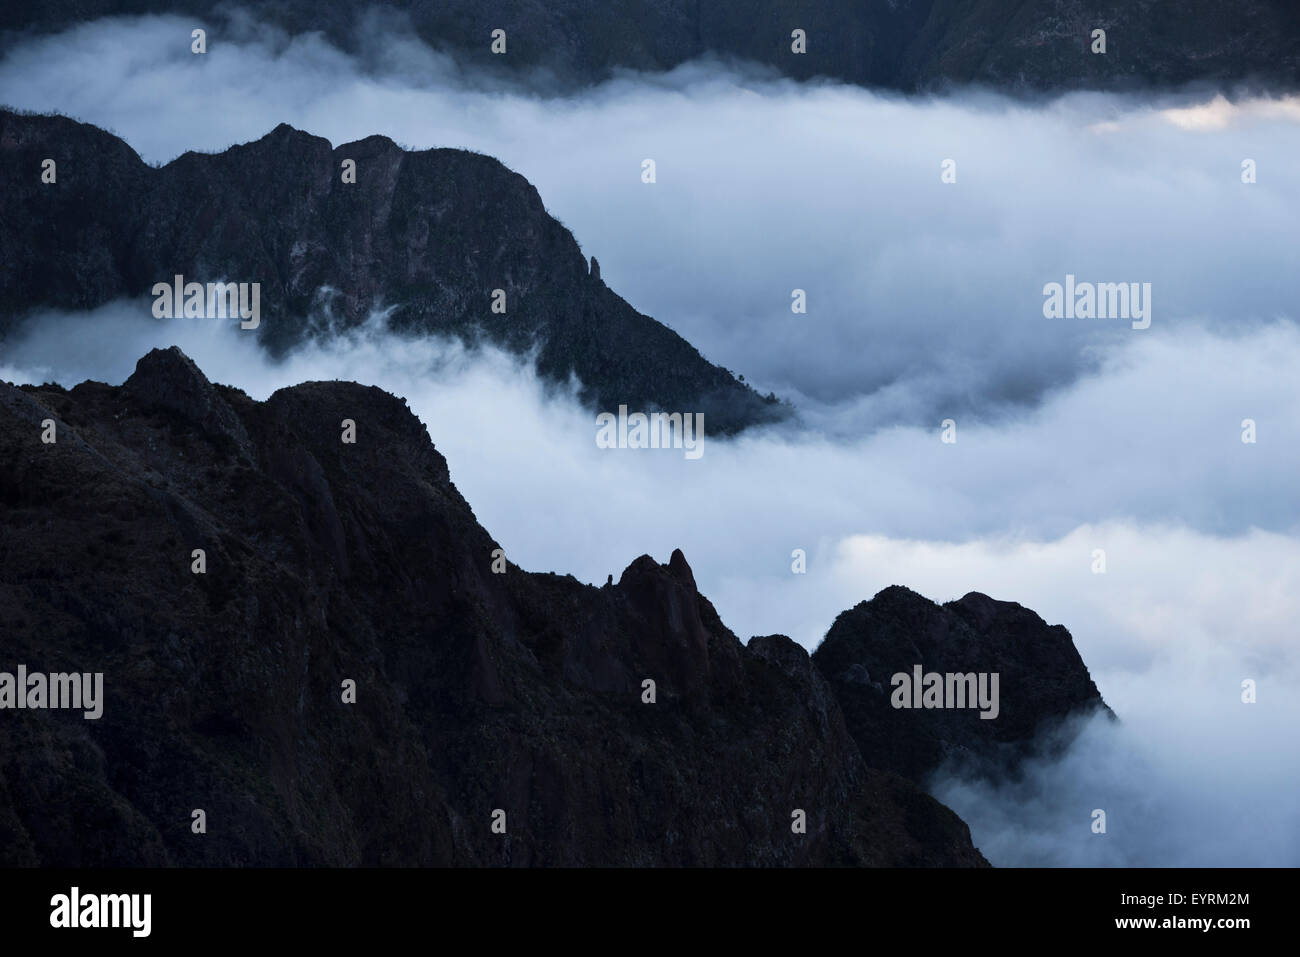 Portugal, Madeira, mountains, inland, fog, clouds, lines, scenery, - Stock Image